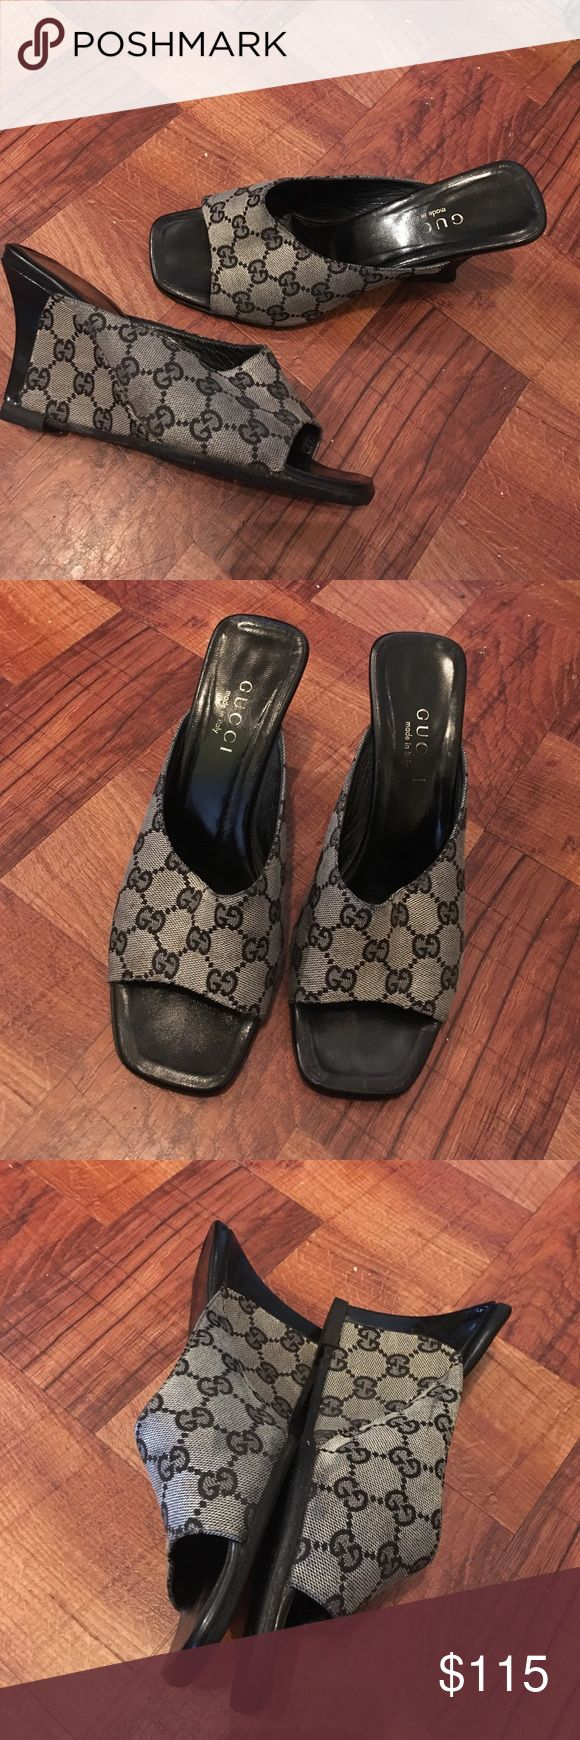 Vintage Gucci Wedges Pre-Owned Vintage Gucci Wedges, Had The Sole And Heel Redone, My Price Is Firm And Thank You For Visiting My Closet...Size 38C Gucci Shoes Wedges